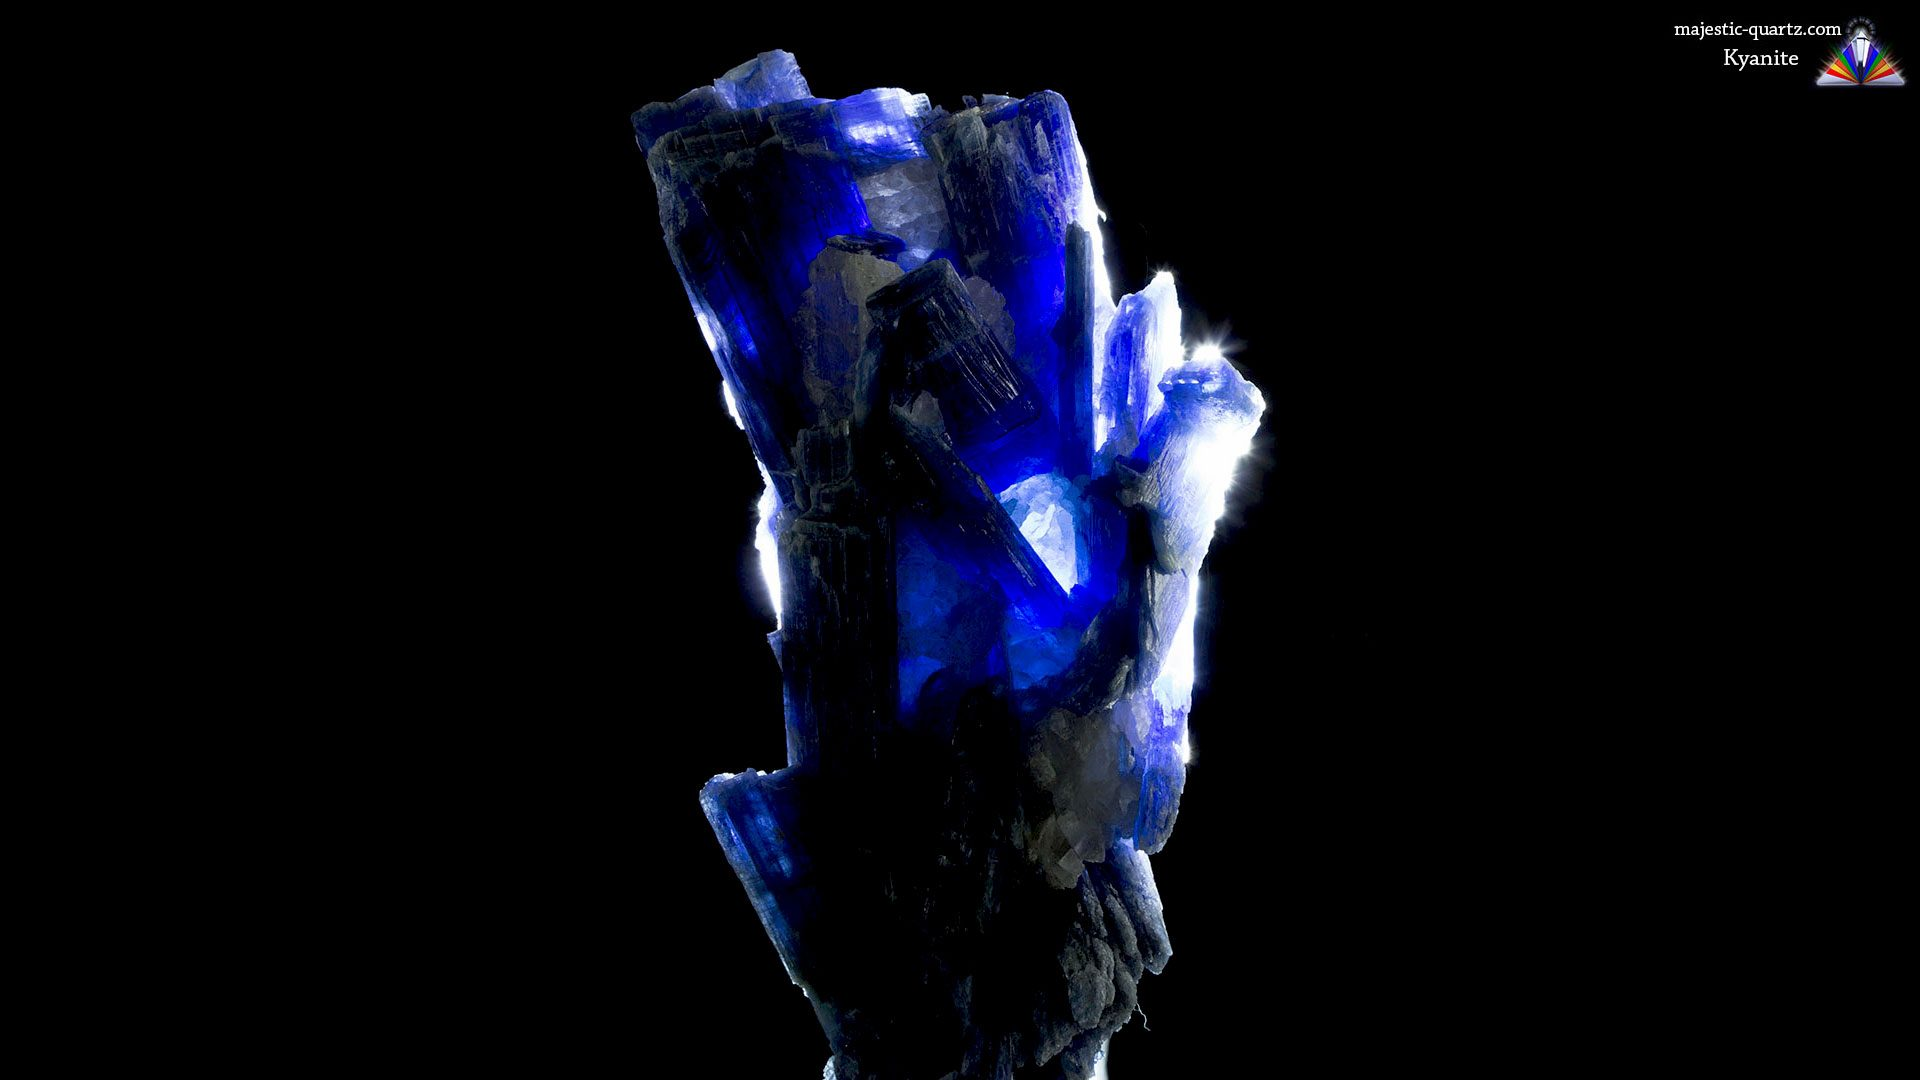 Terminated Blue Kyanite Mineral Specimen - Photograph by Anthony Bradford